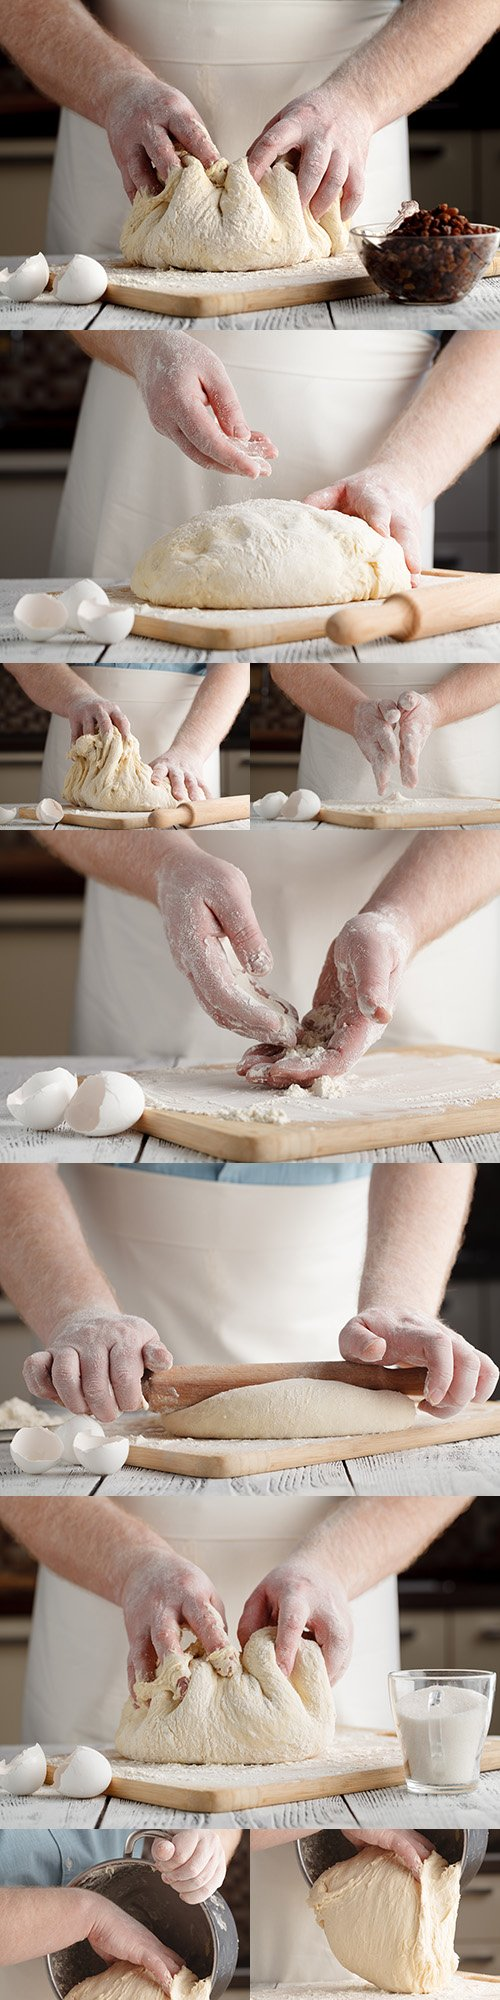 Bakery chef kneads baking dough with his hands